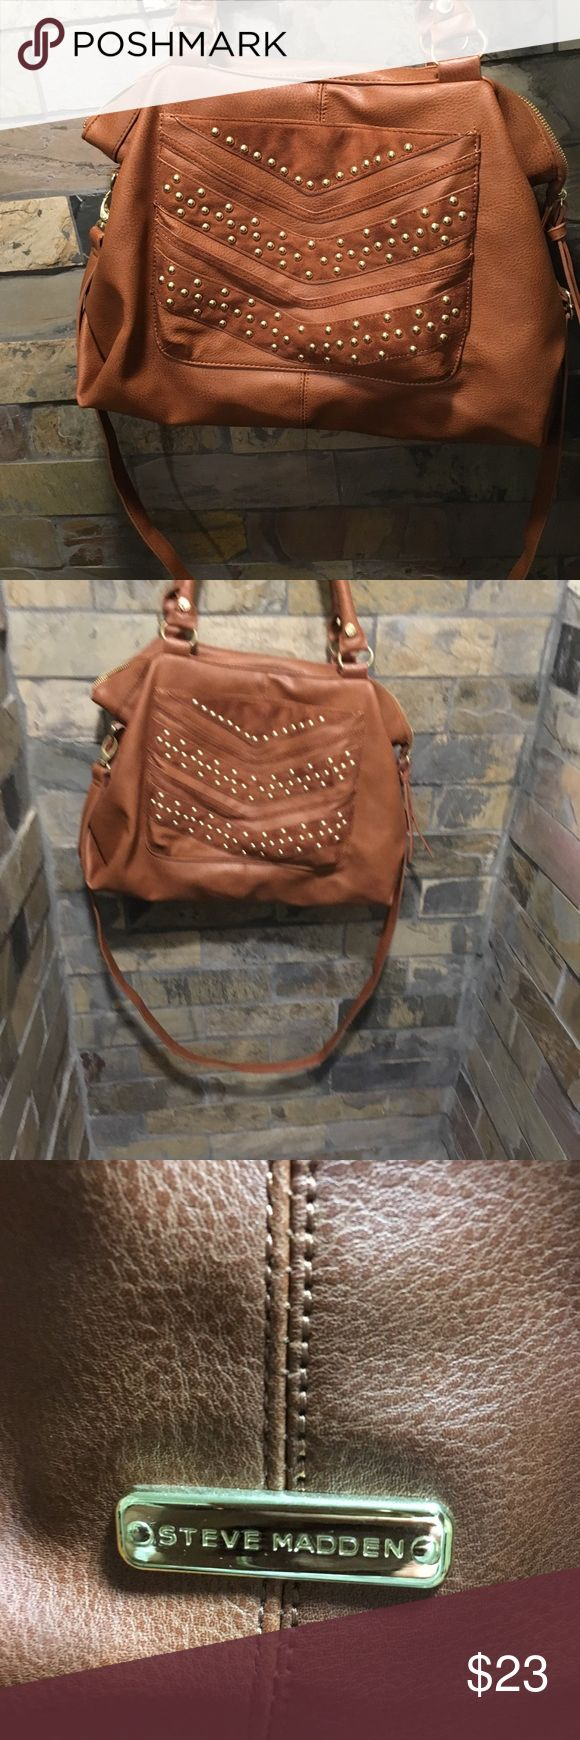 Steve Madden messenger bag Supper cute excellent condition large messenger bag by Steve Madden Steve Madden Bags Shoulder Bags